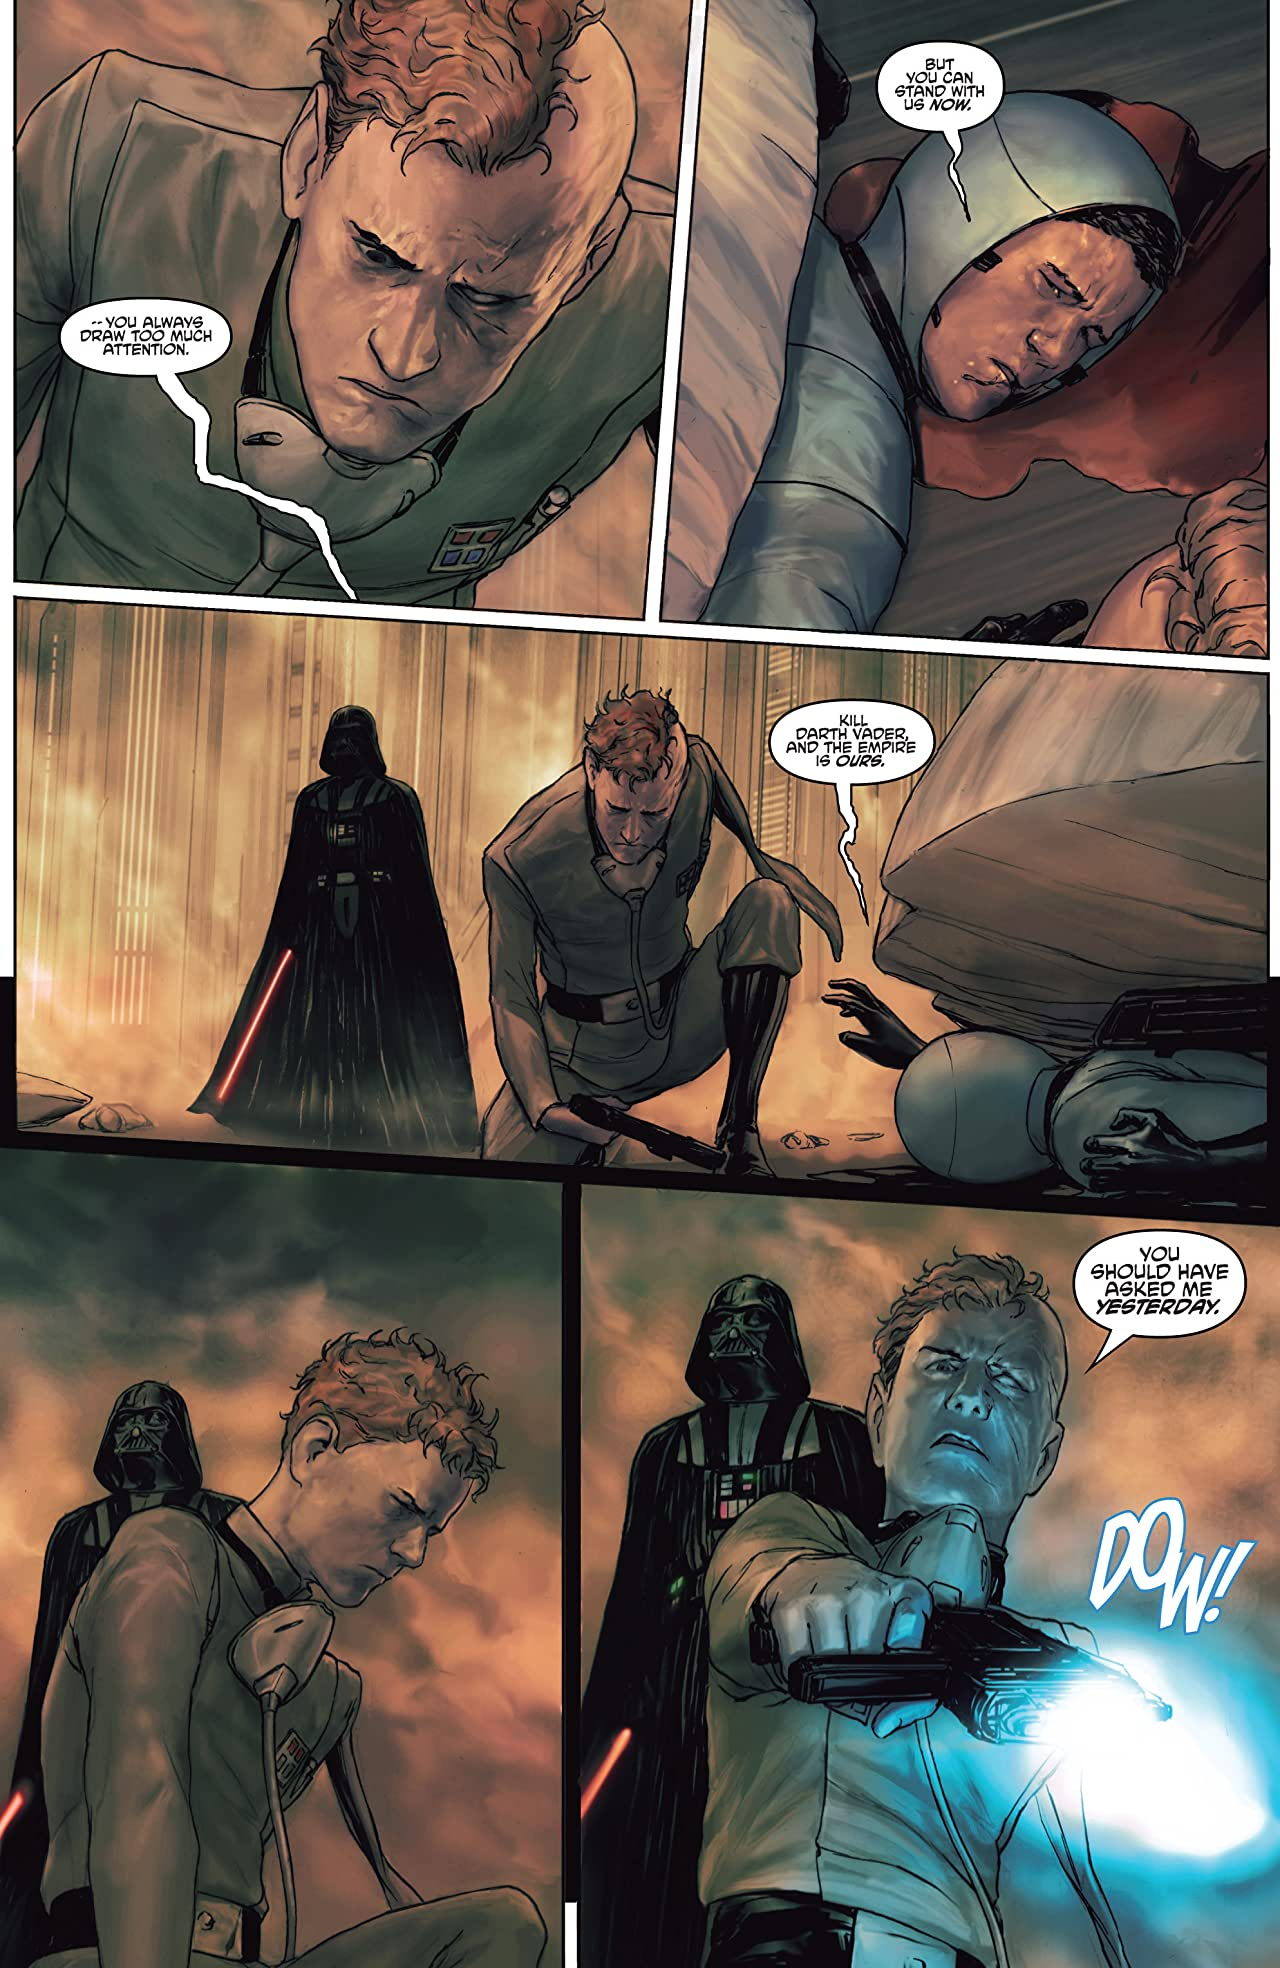 Star Wars: Darth Vader and the Ghost Prison (2012) #2 (of 5)